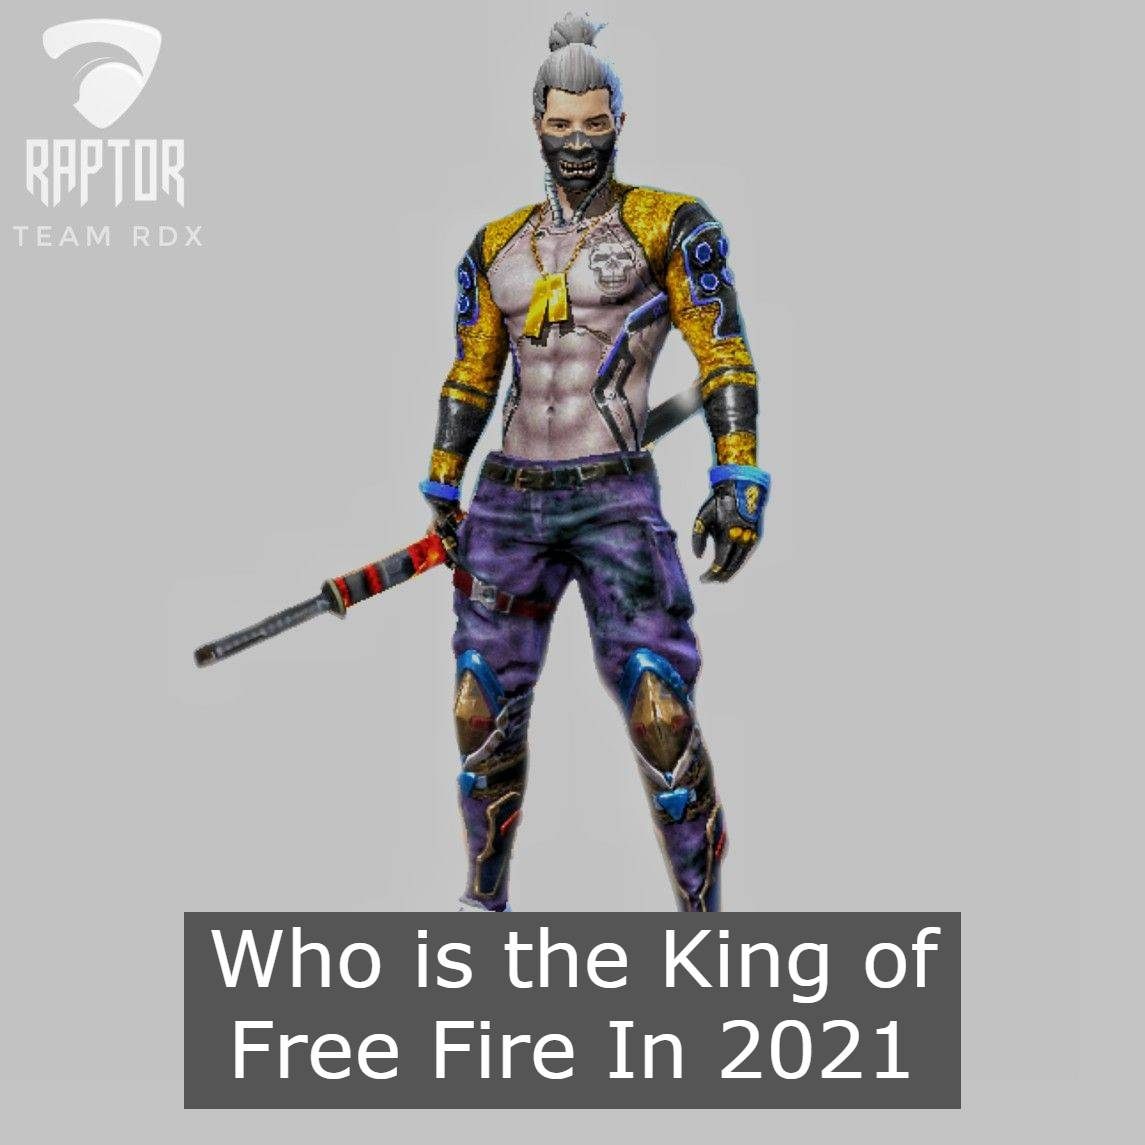 who is the King of Free Fire